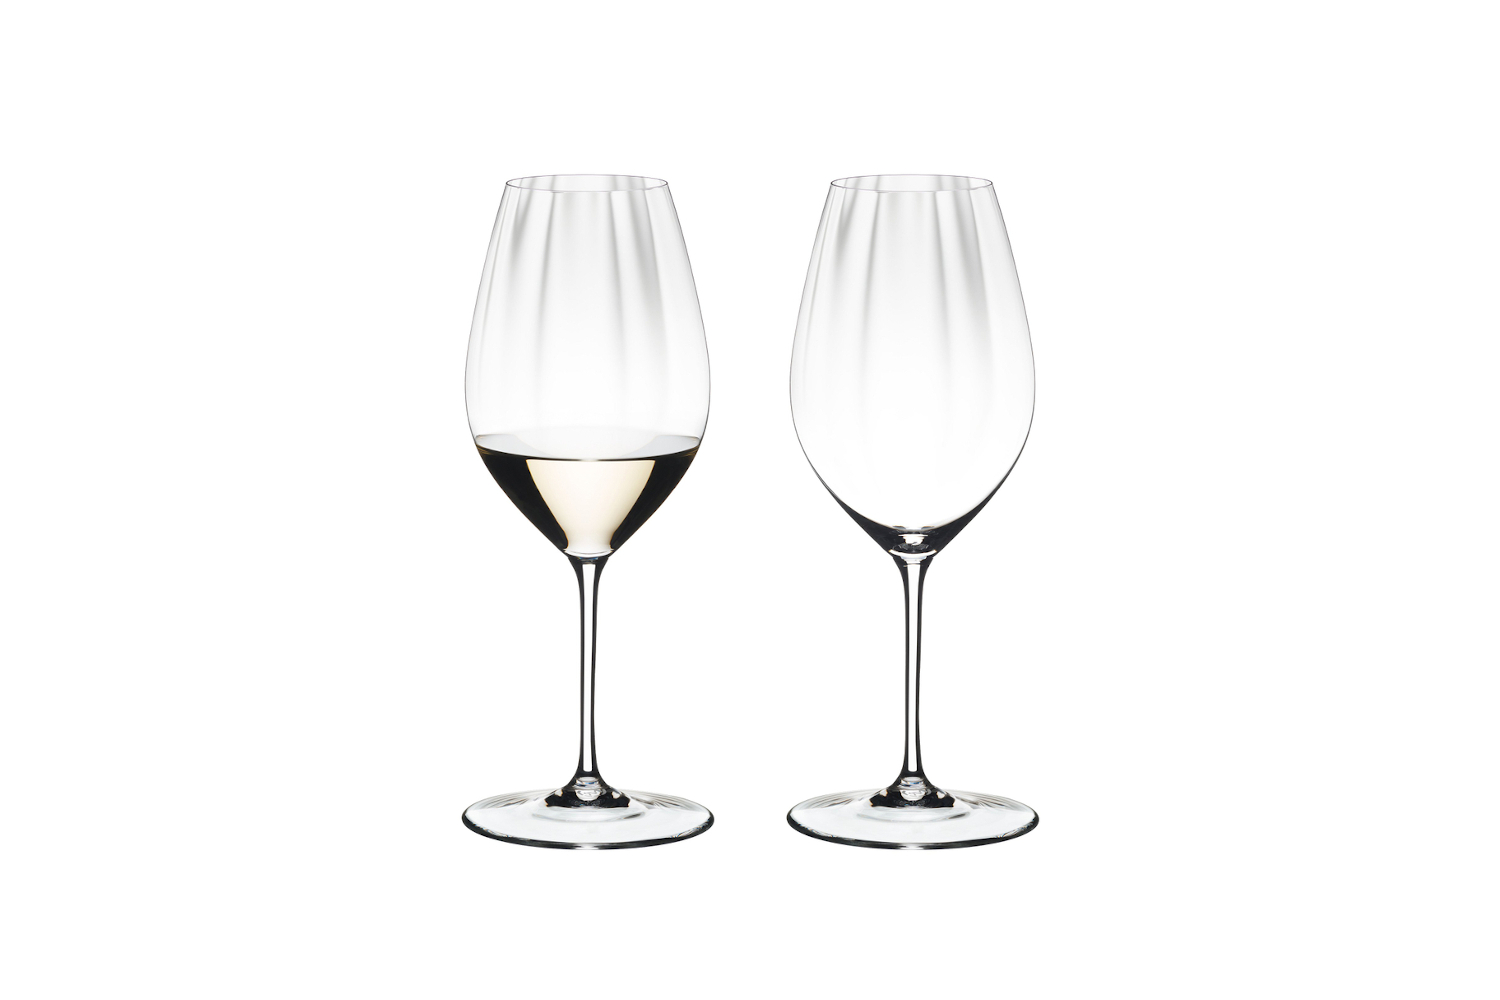 Riedel Performance Riesling Wine Glasses 6884 15 Free Shipping Metrokitchen